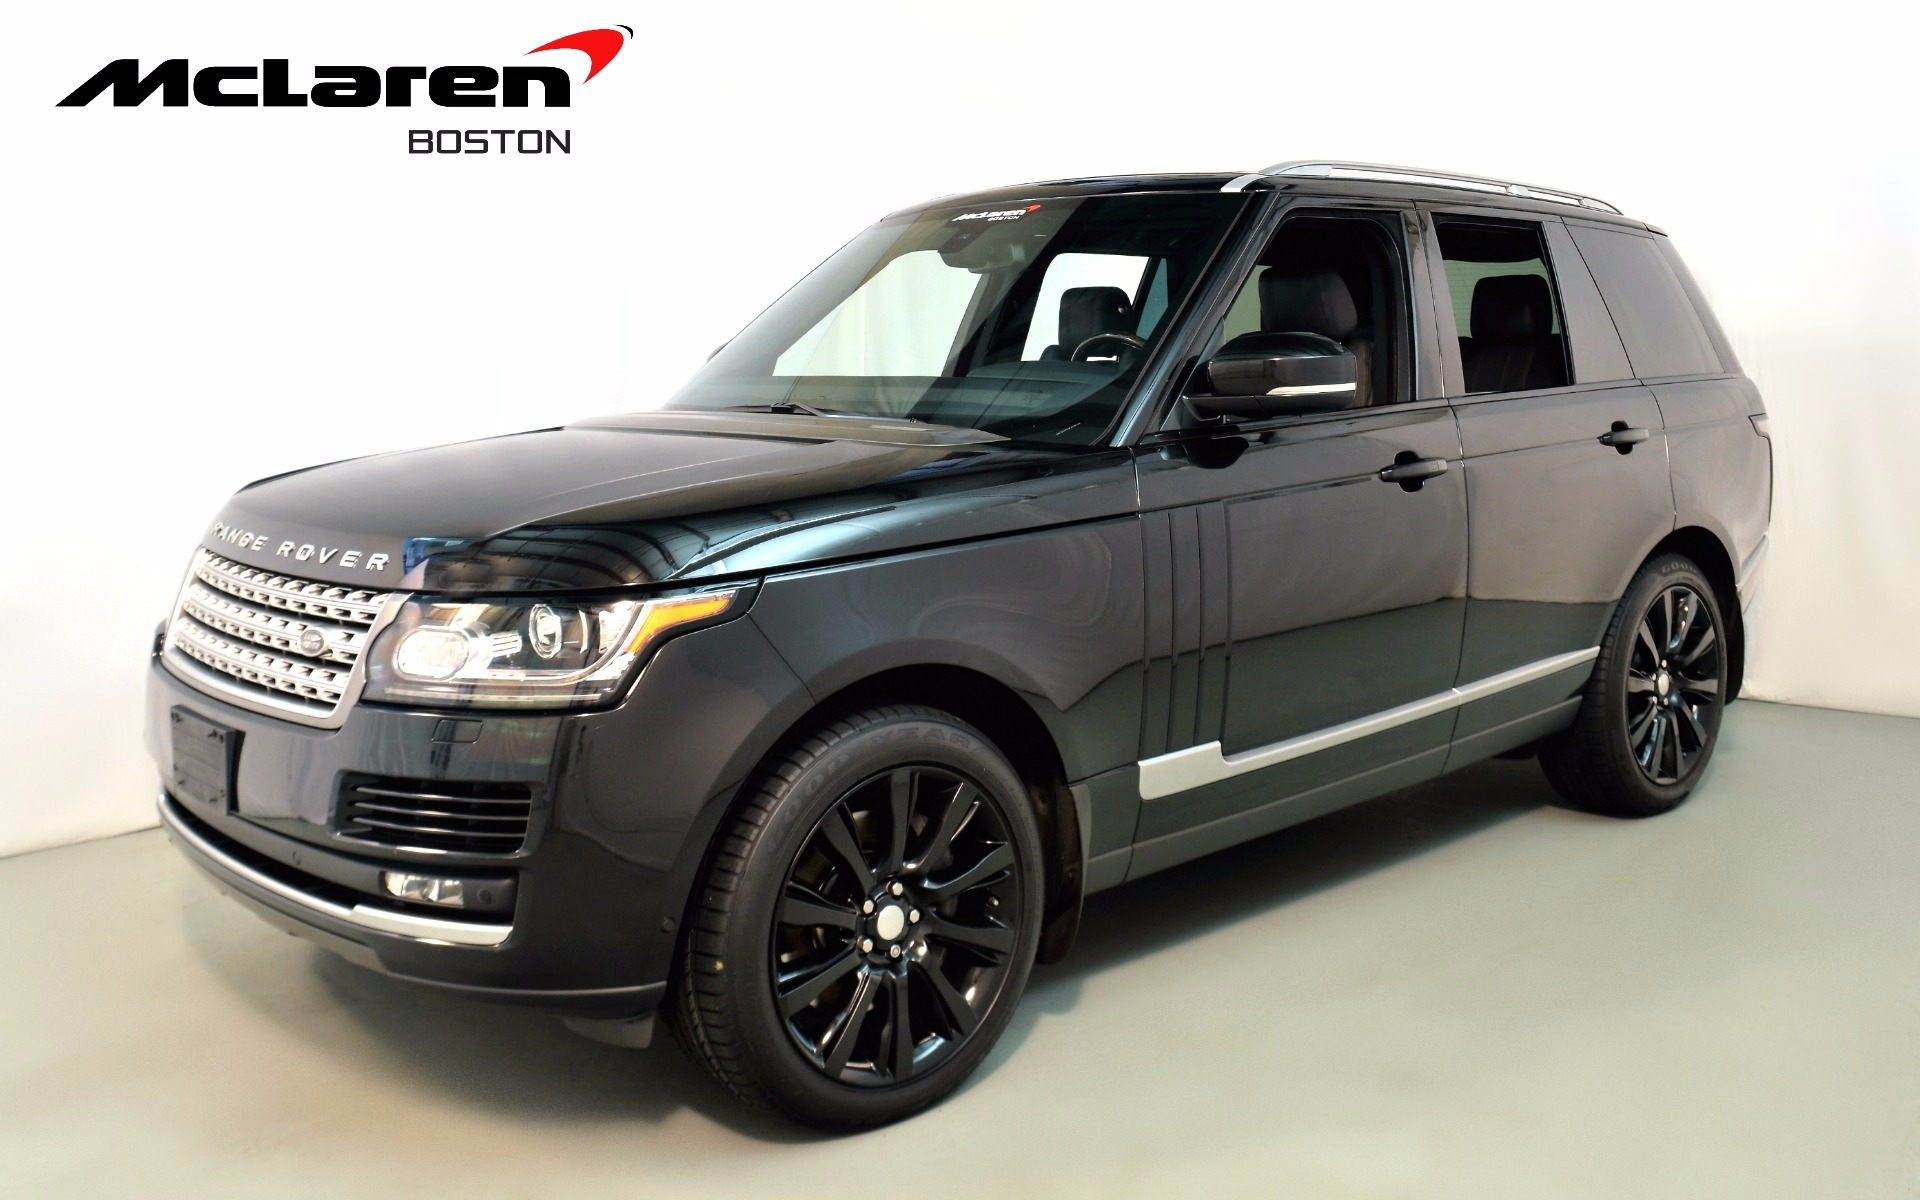 2014 Land Rover Range Rover Supercharged Ebony Edition For Sale in